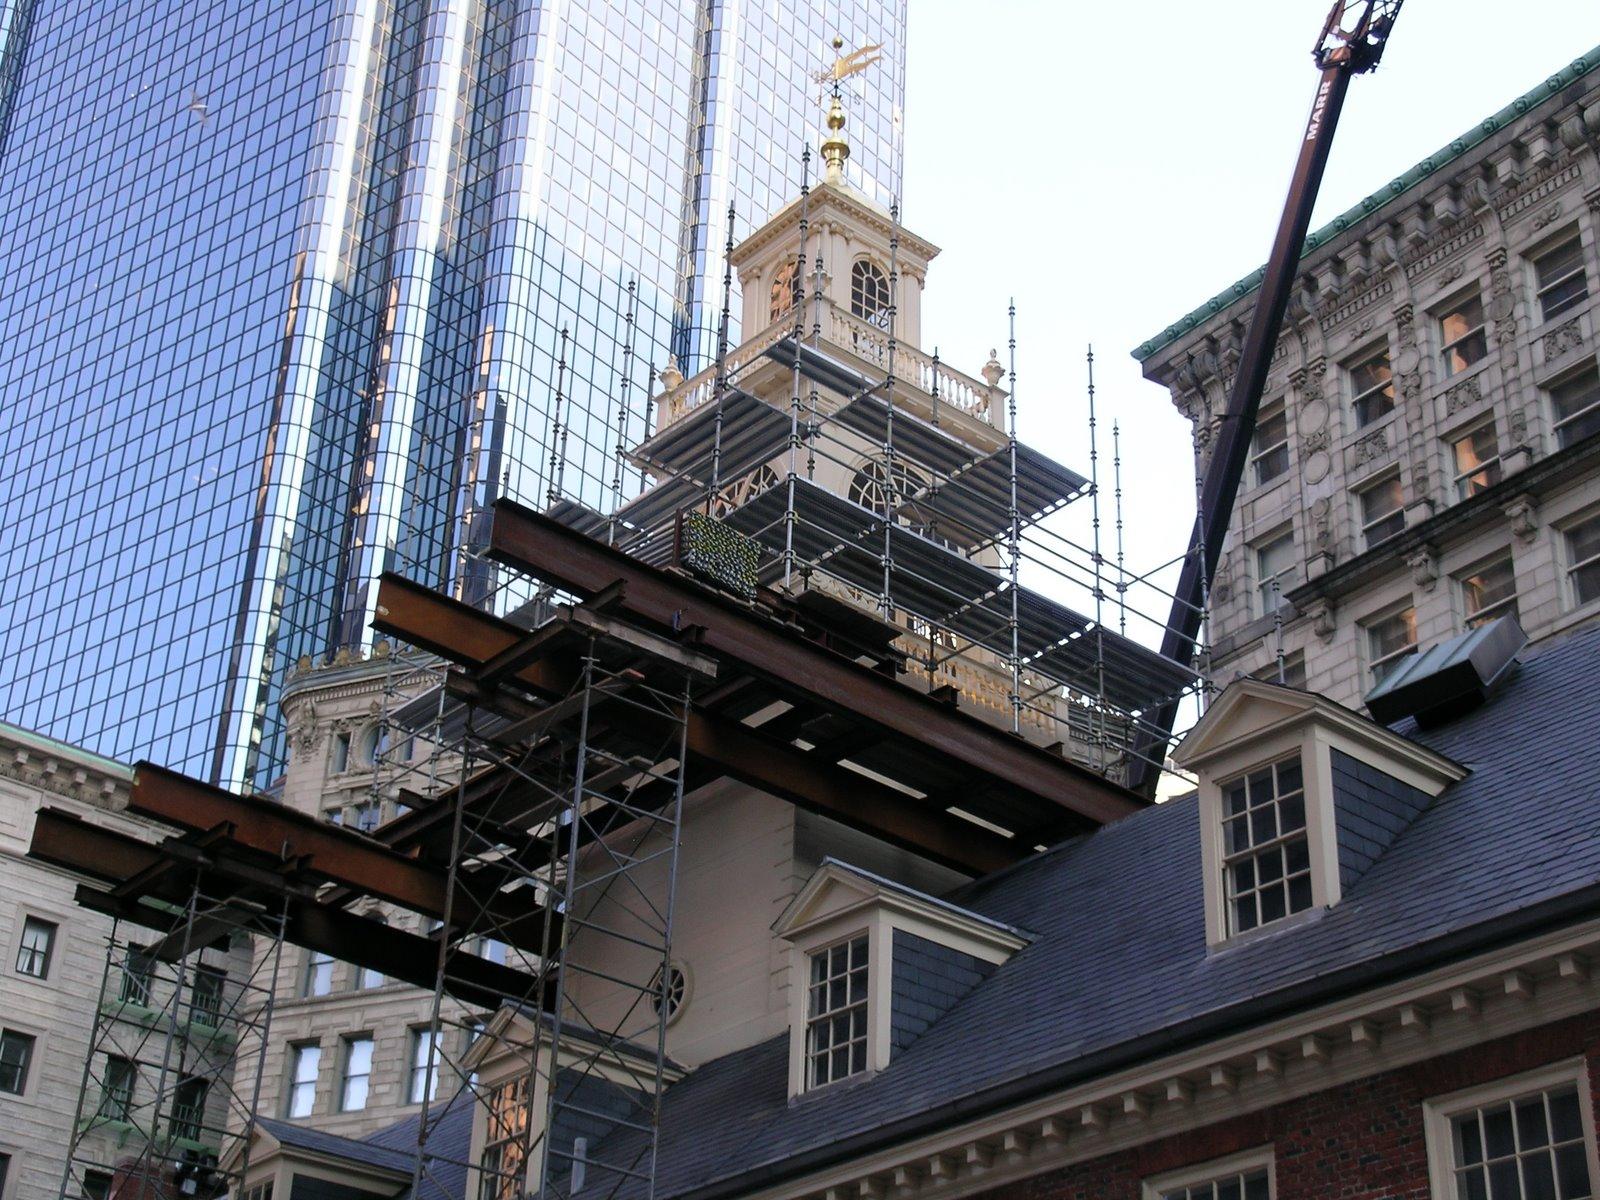 OLD STATE HOUSE CUPOLA